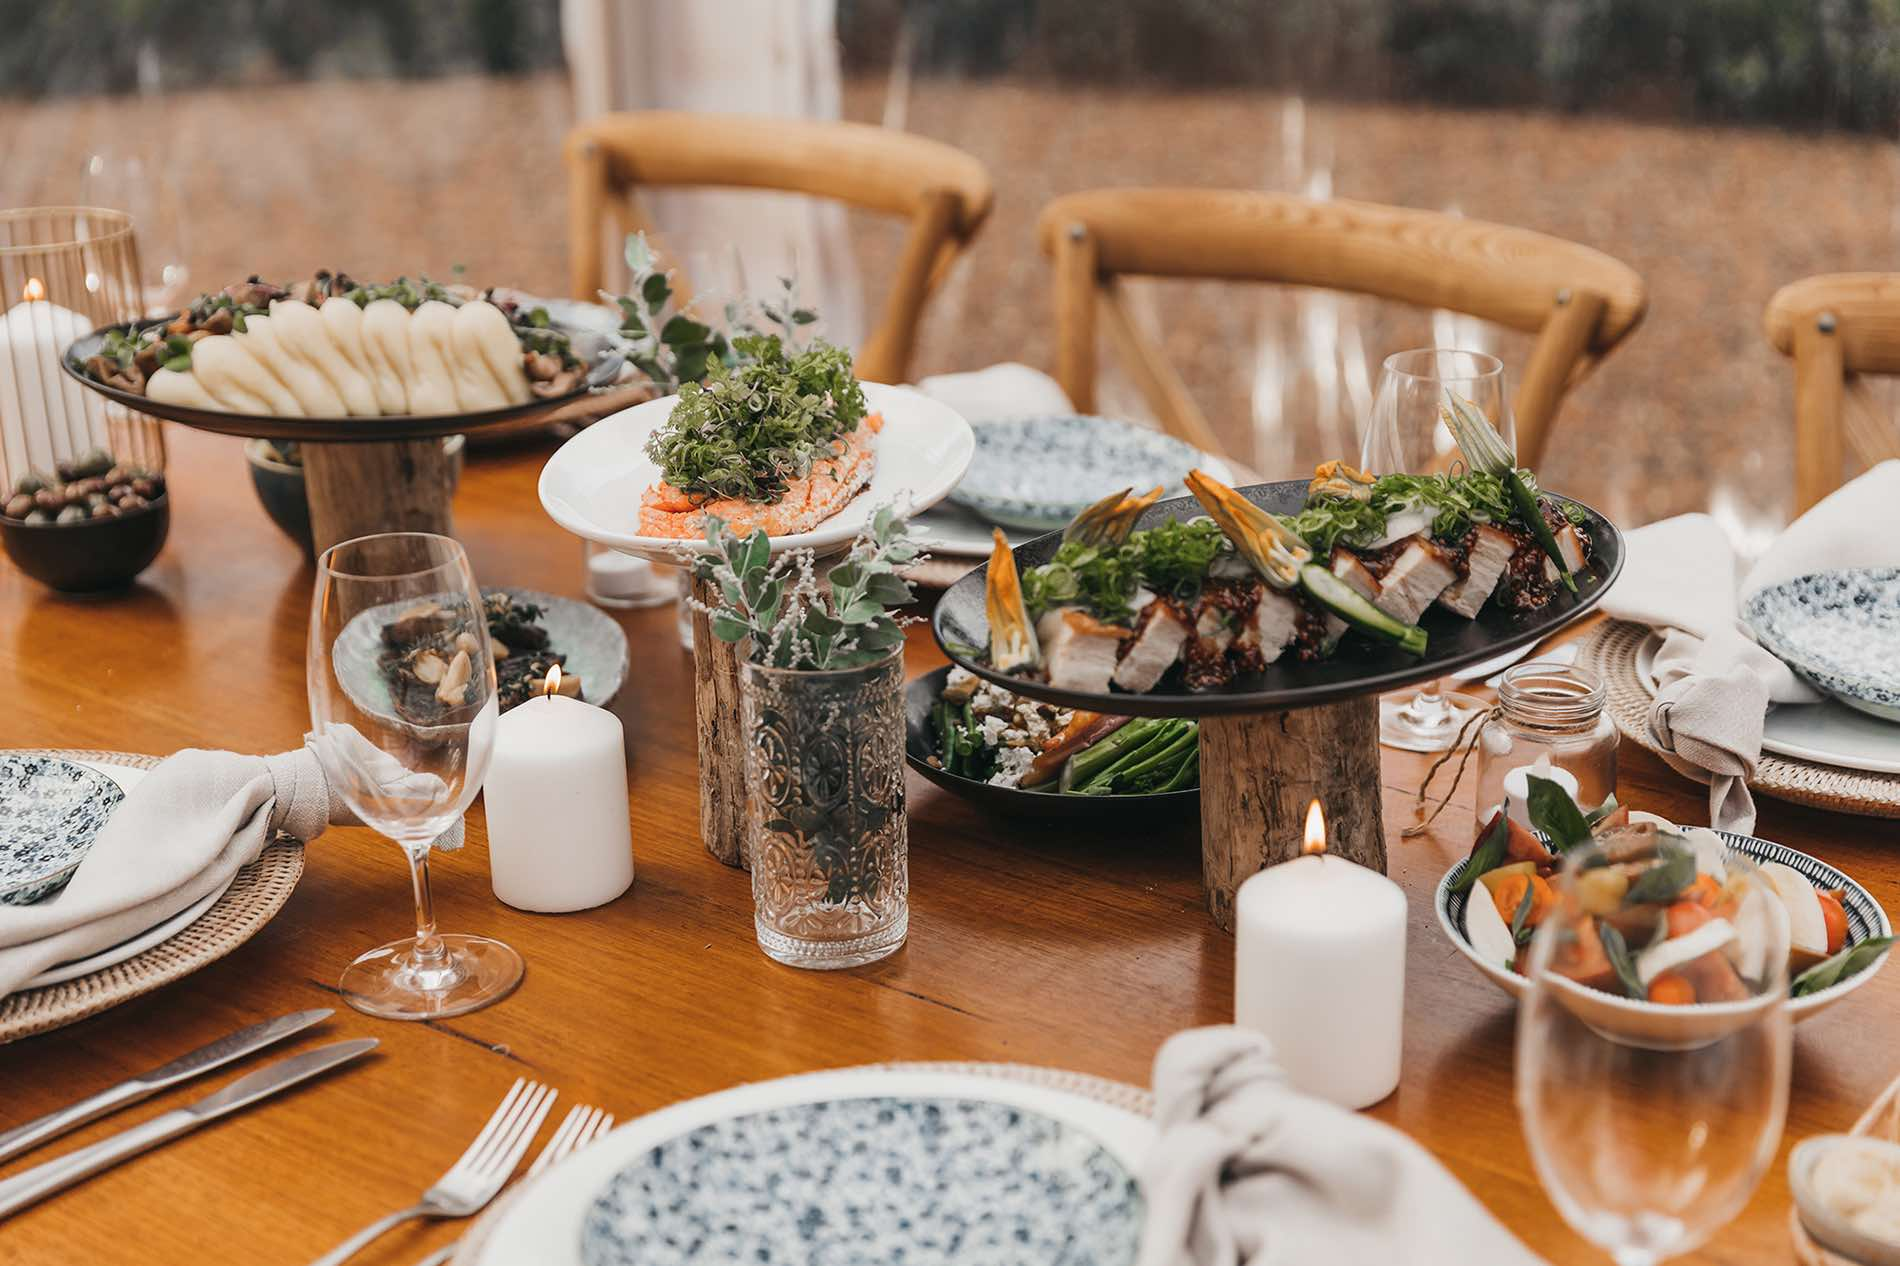 Wedding catering at The Bower Estate Gold Coast wedding venue with delicious canapes, feasting tables, alternate drop and all inclusive packages